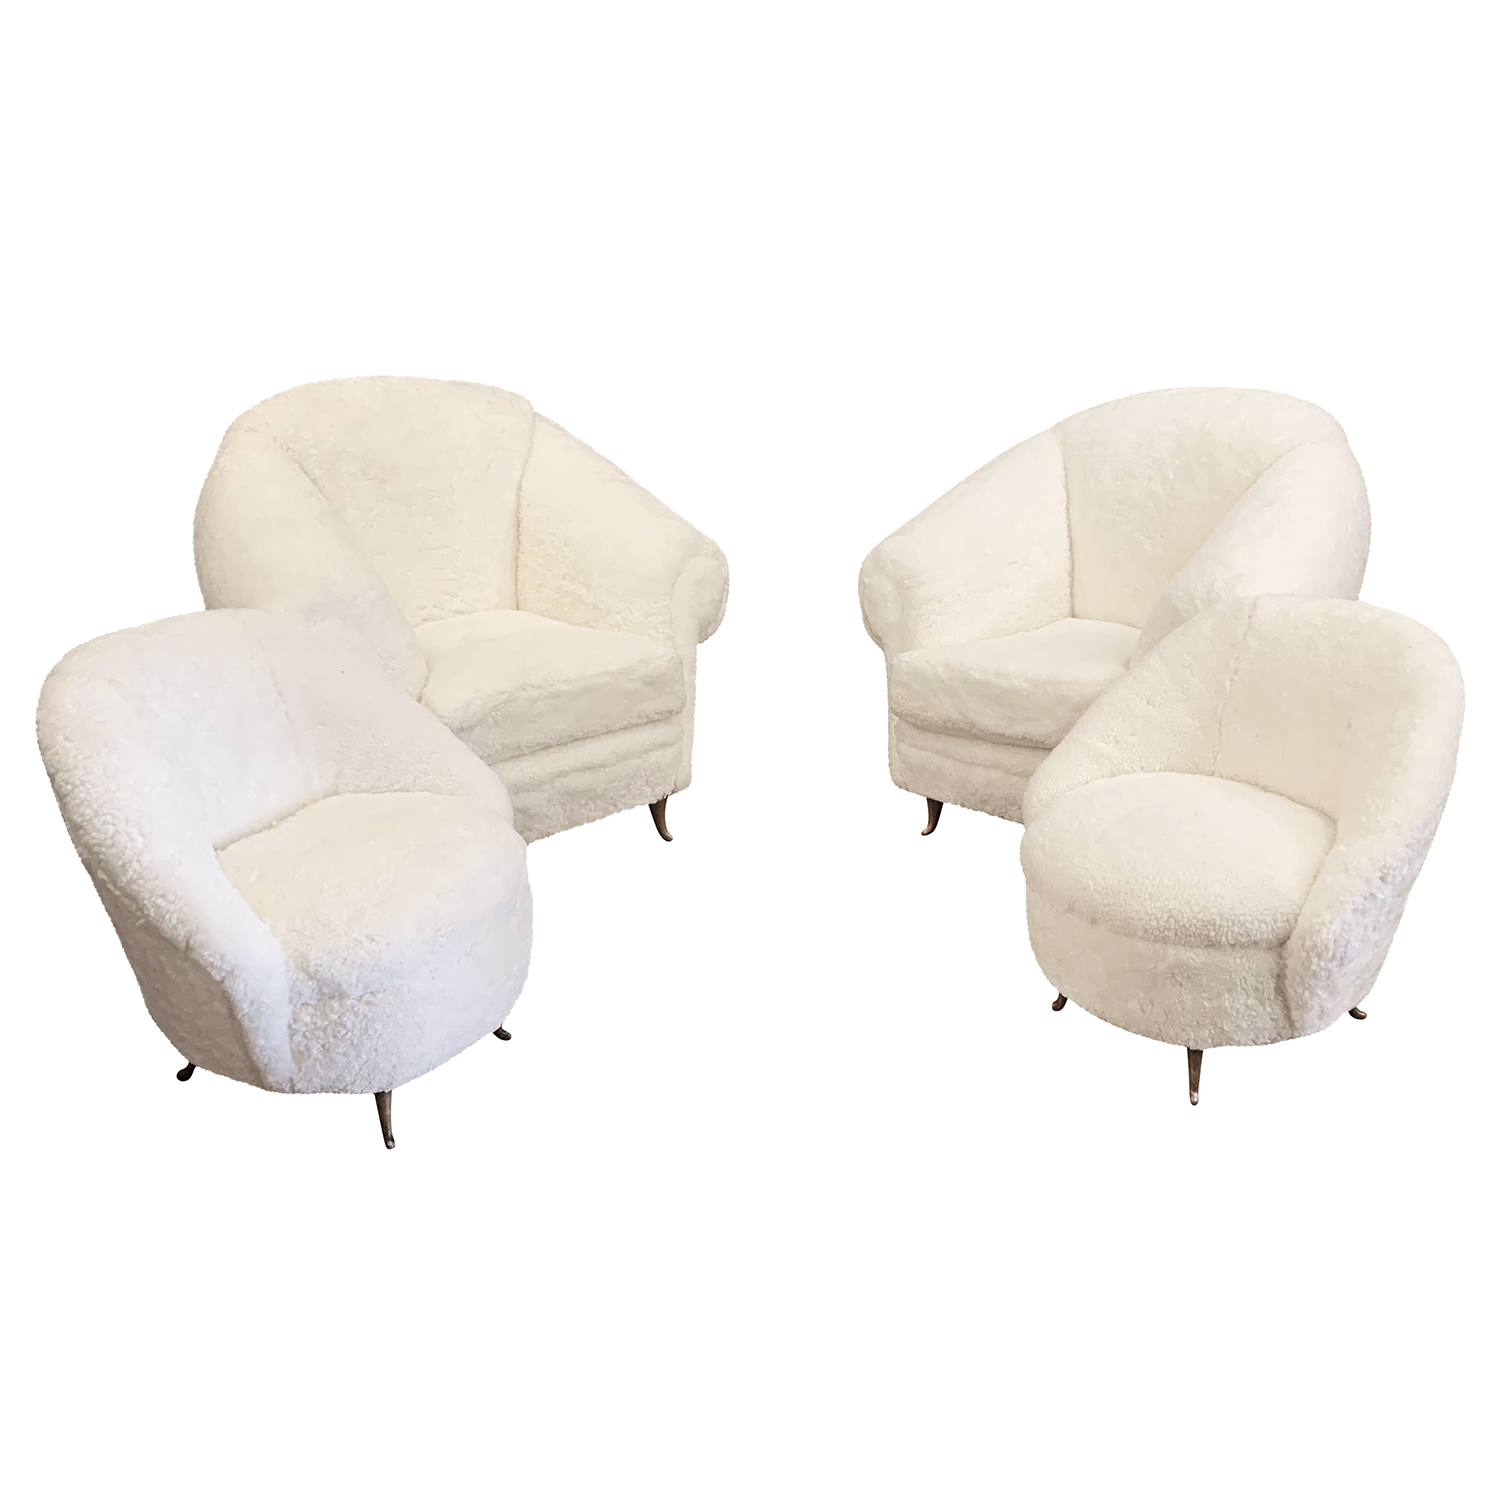 20th Century Italian Set of Four White Sheepskin Lounge Chairs by ISA Bergamo